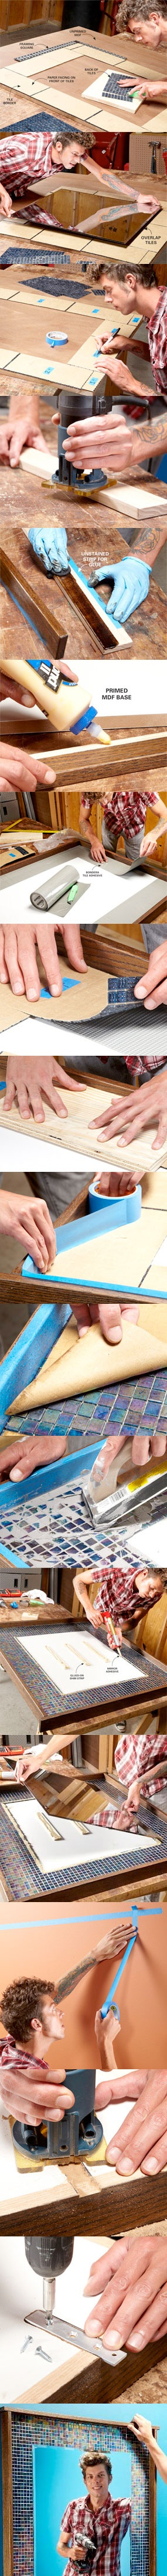 For details visit http://www.familyhandyman.com/DIY-Projects/Tile/Tile-Techniques/diy-decorating--frame-your-mirror-with-glass-tile/View-All